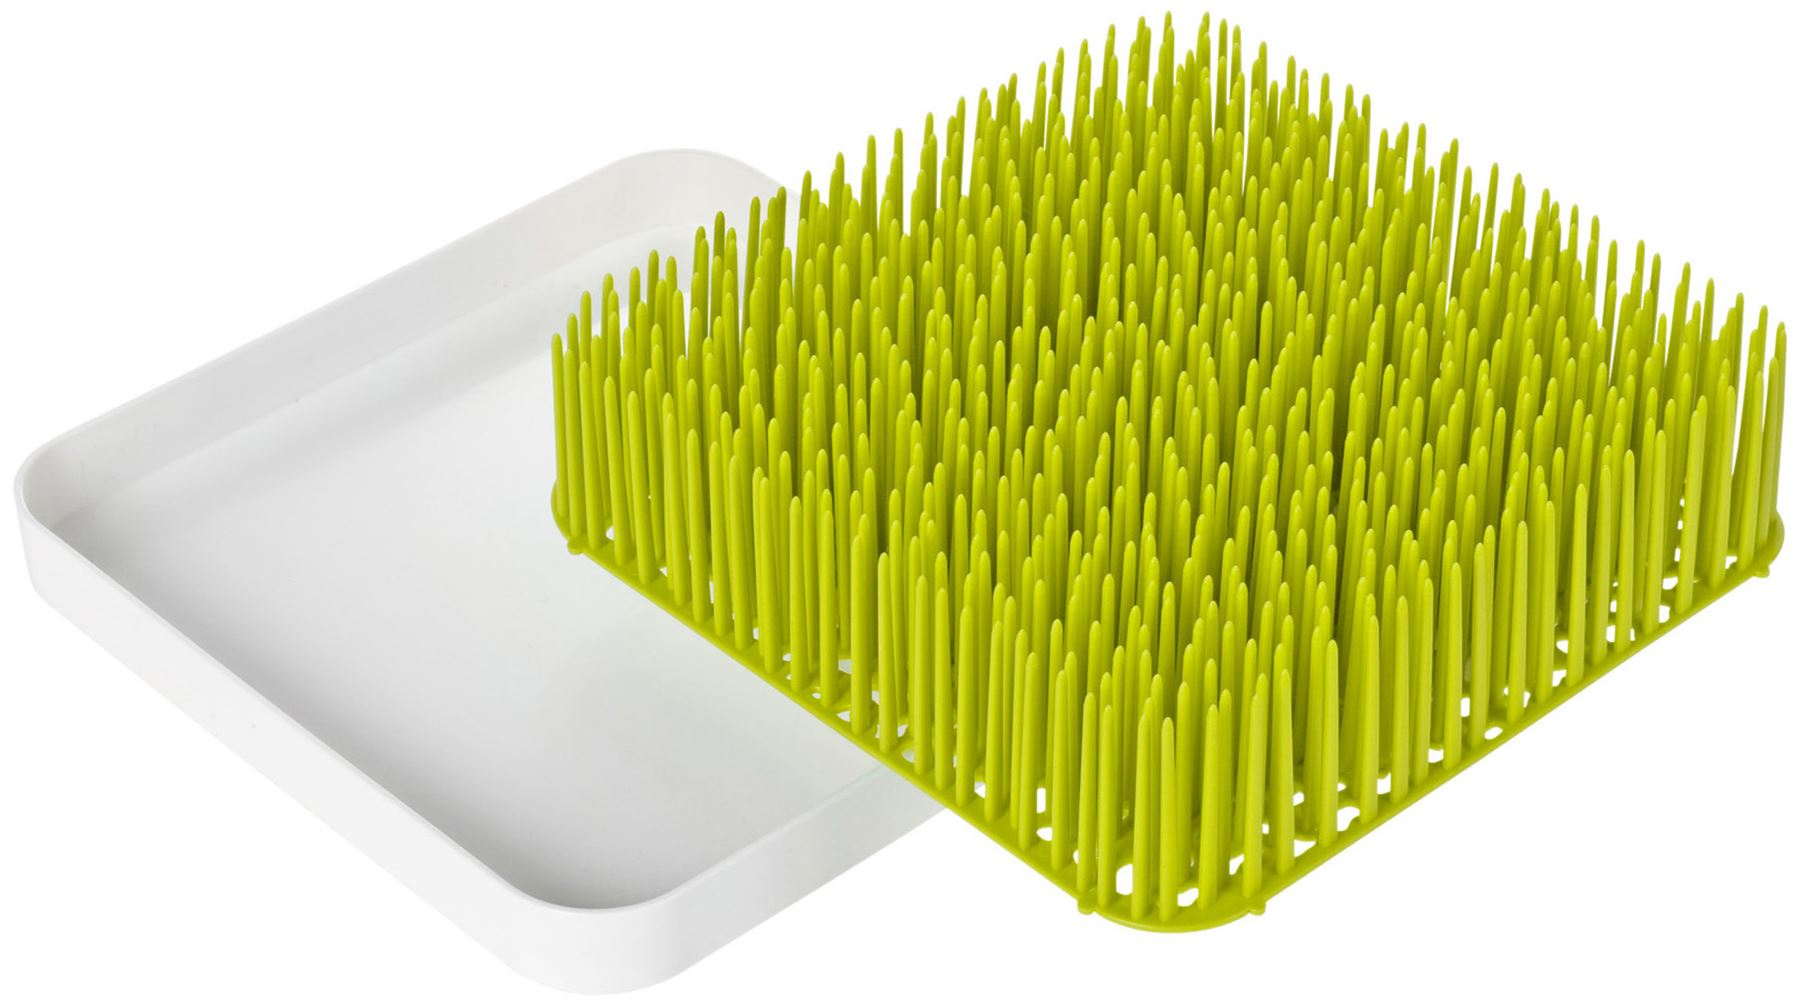 Boon Drying Rack: Boon GRASS GREEN Baby Feeding Accessory Drying Rack